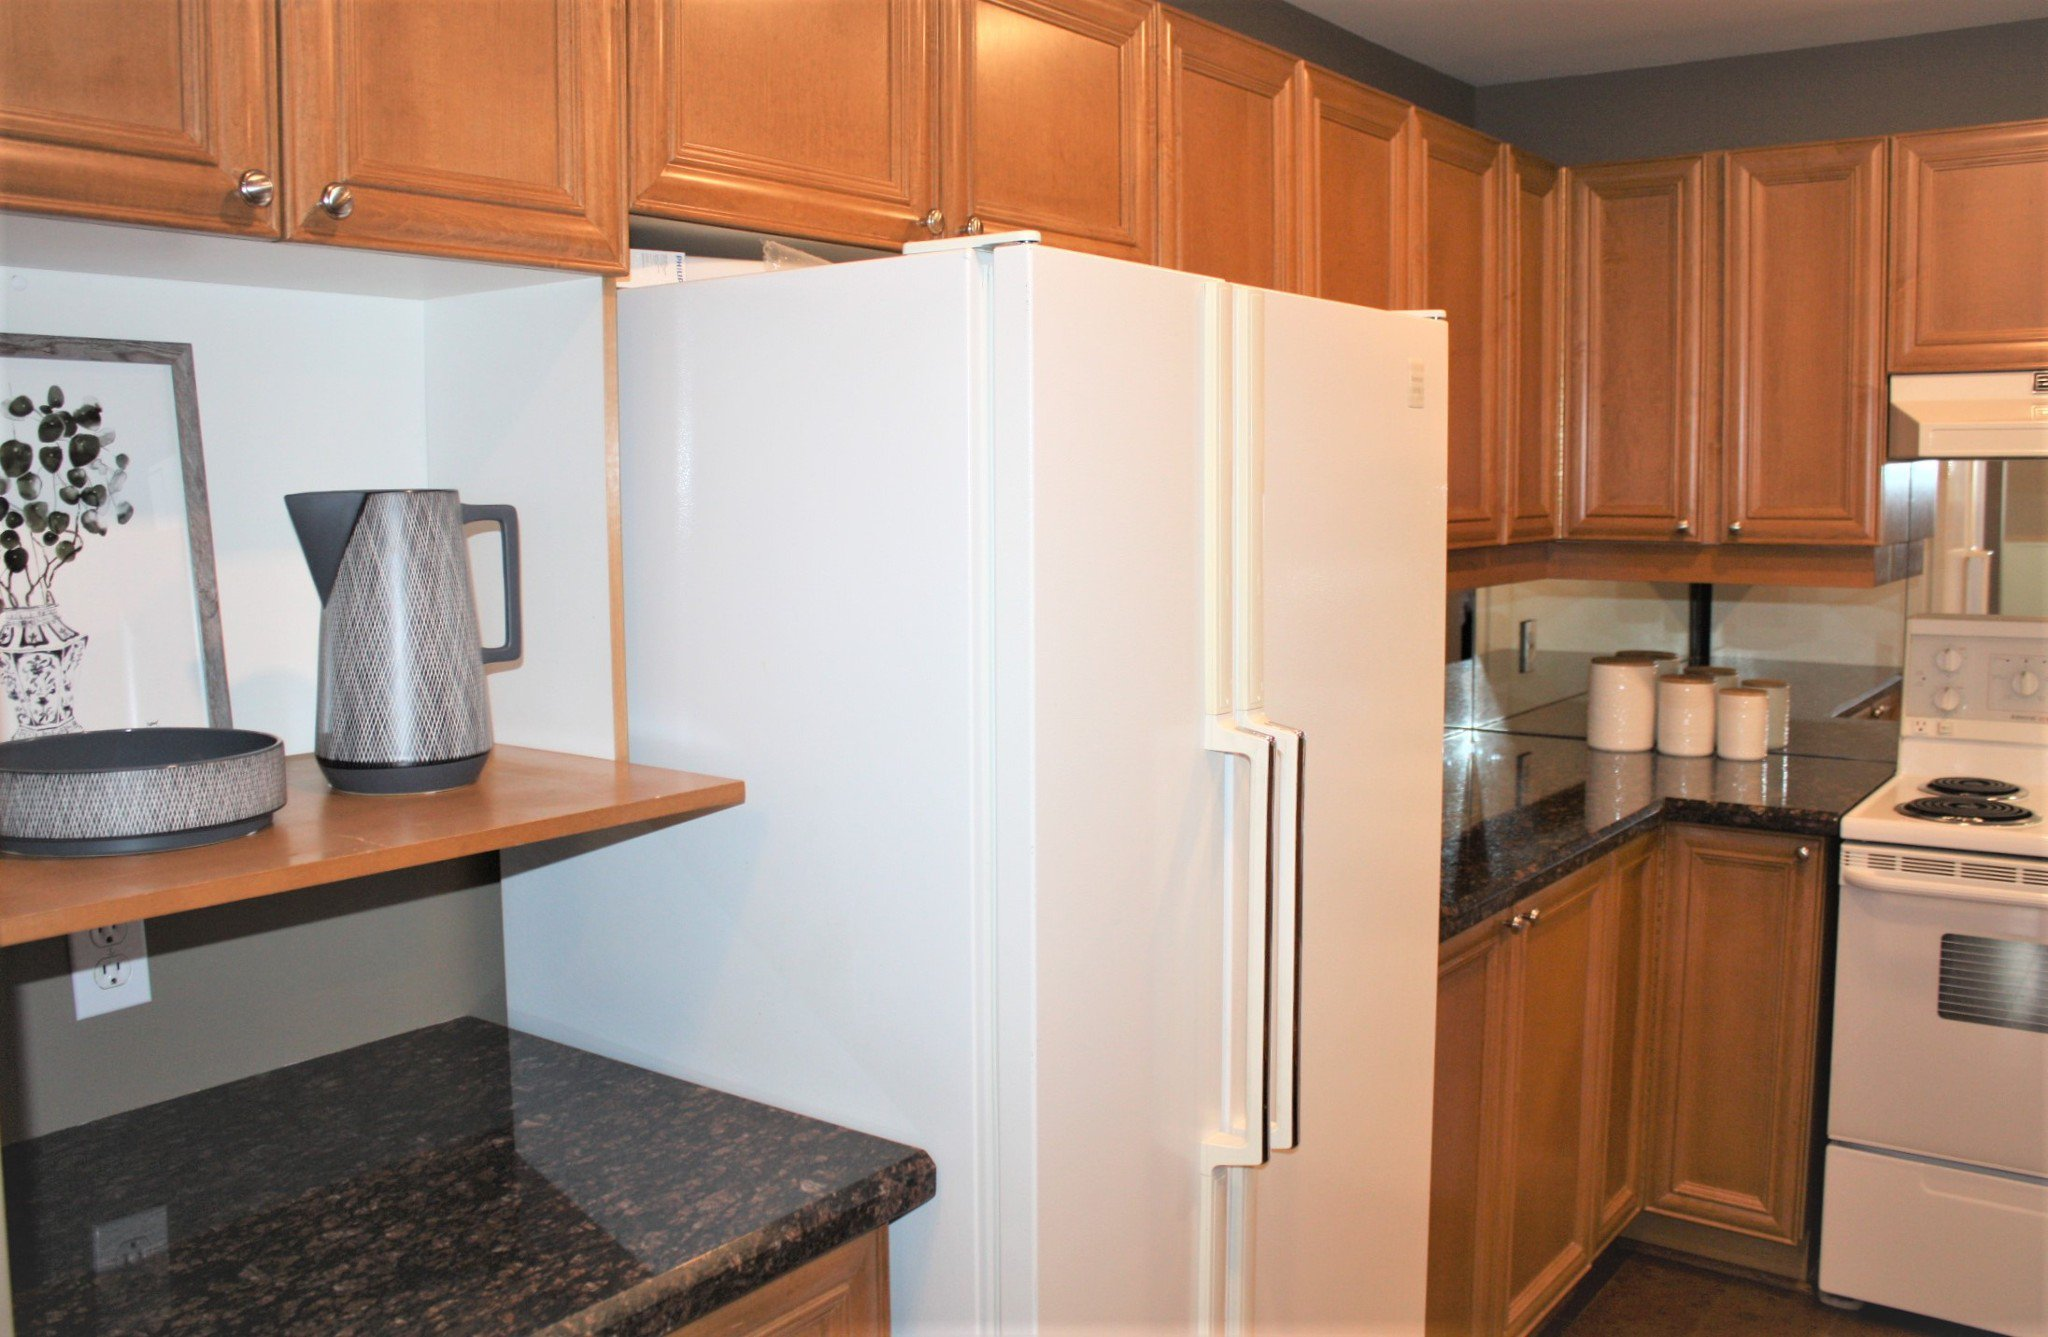 Photo 6: Photos: 113 245 Elgin Street in Cobourg: Residential Attached for sale : MLS®# 219780